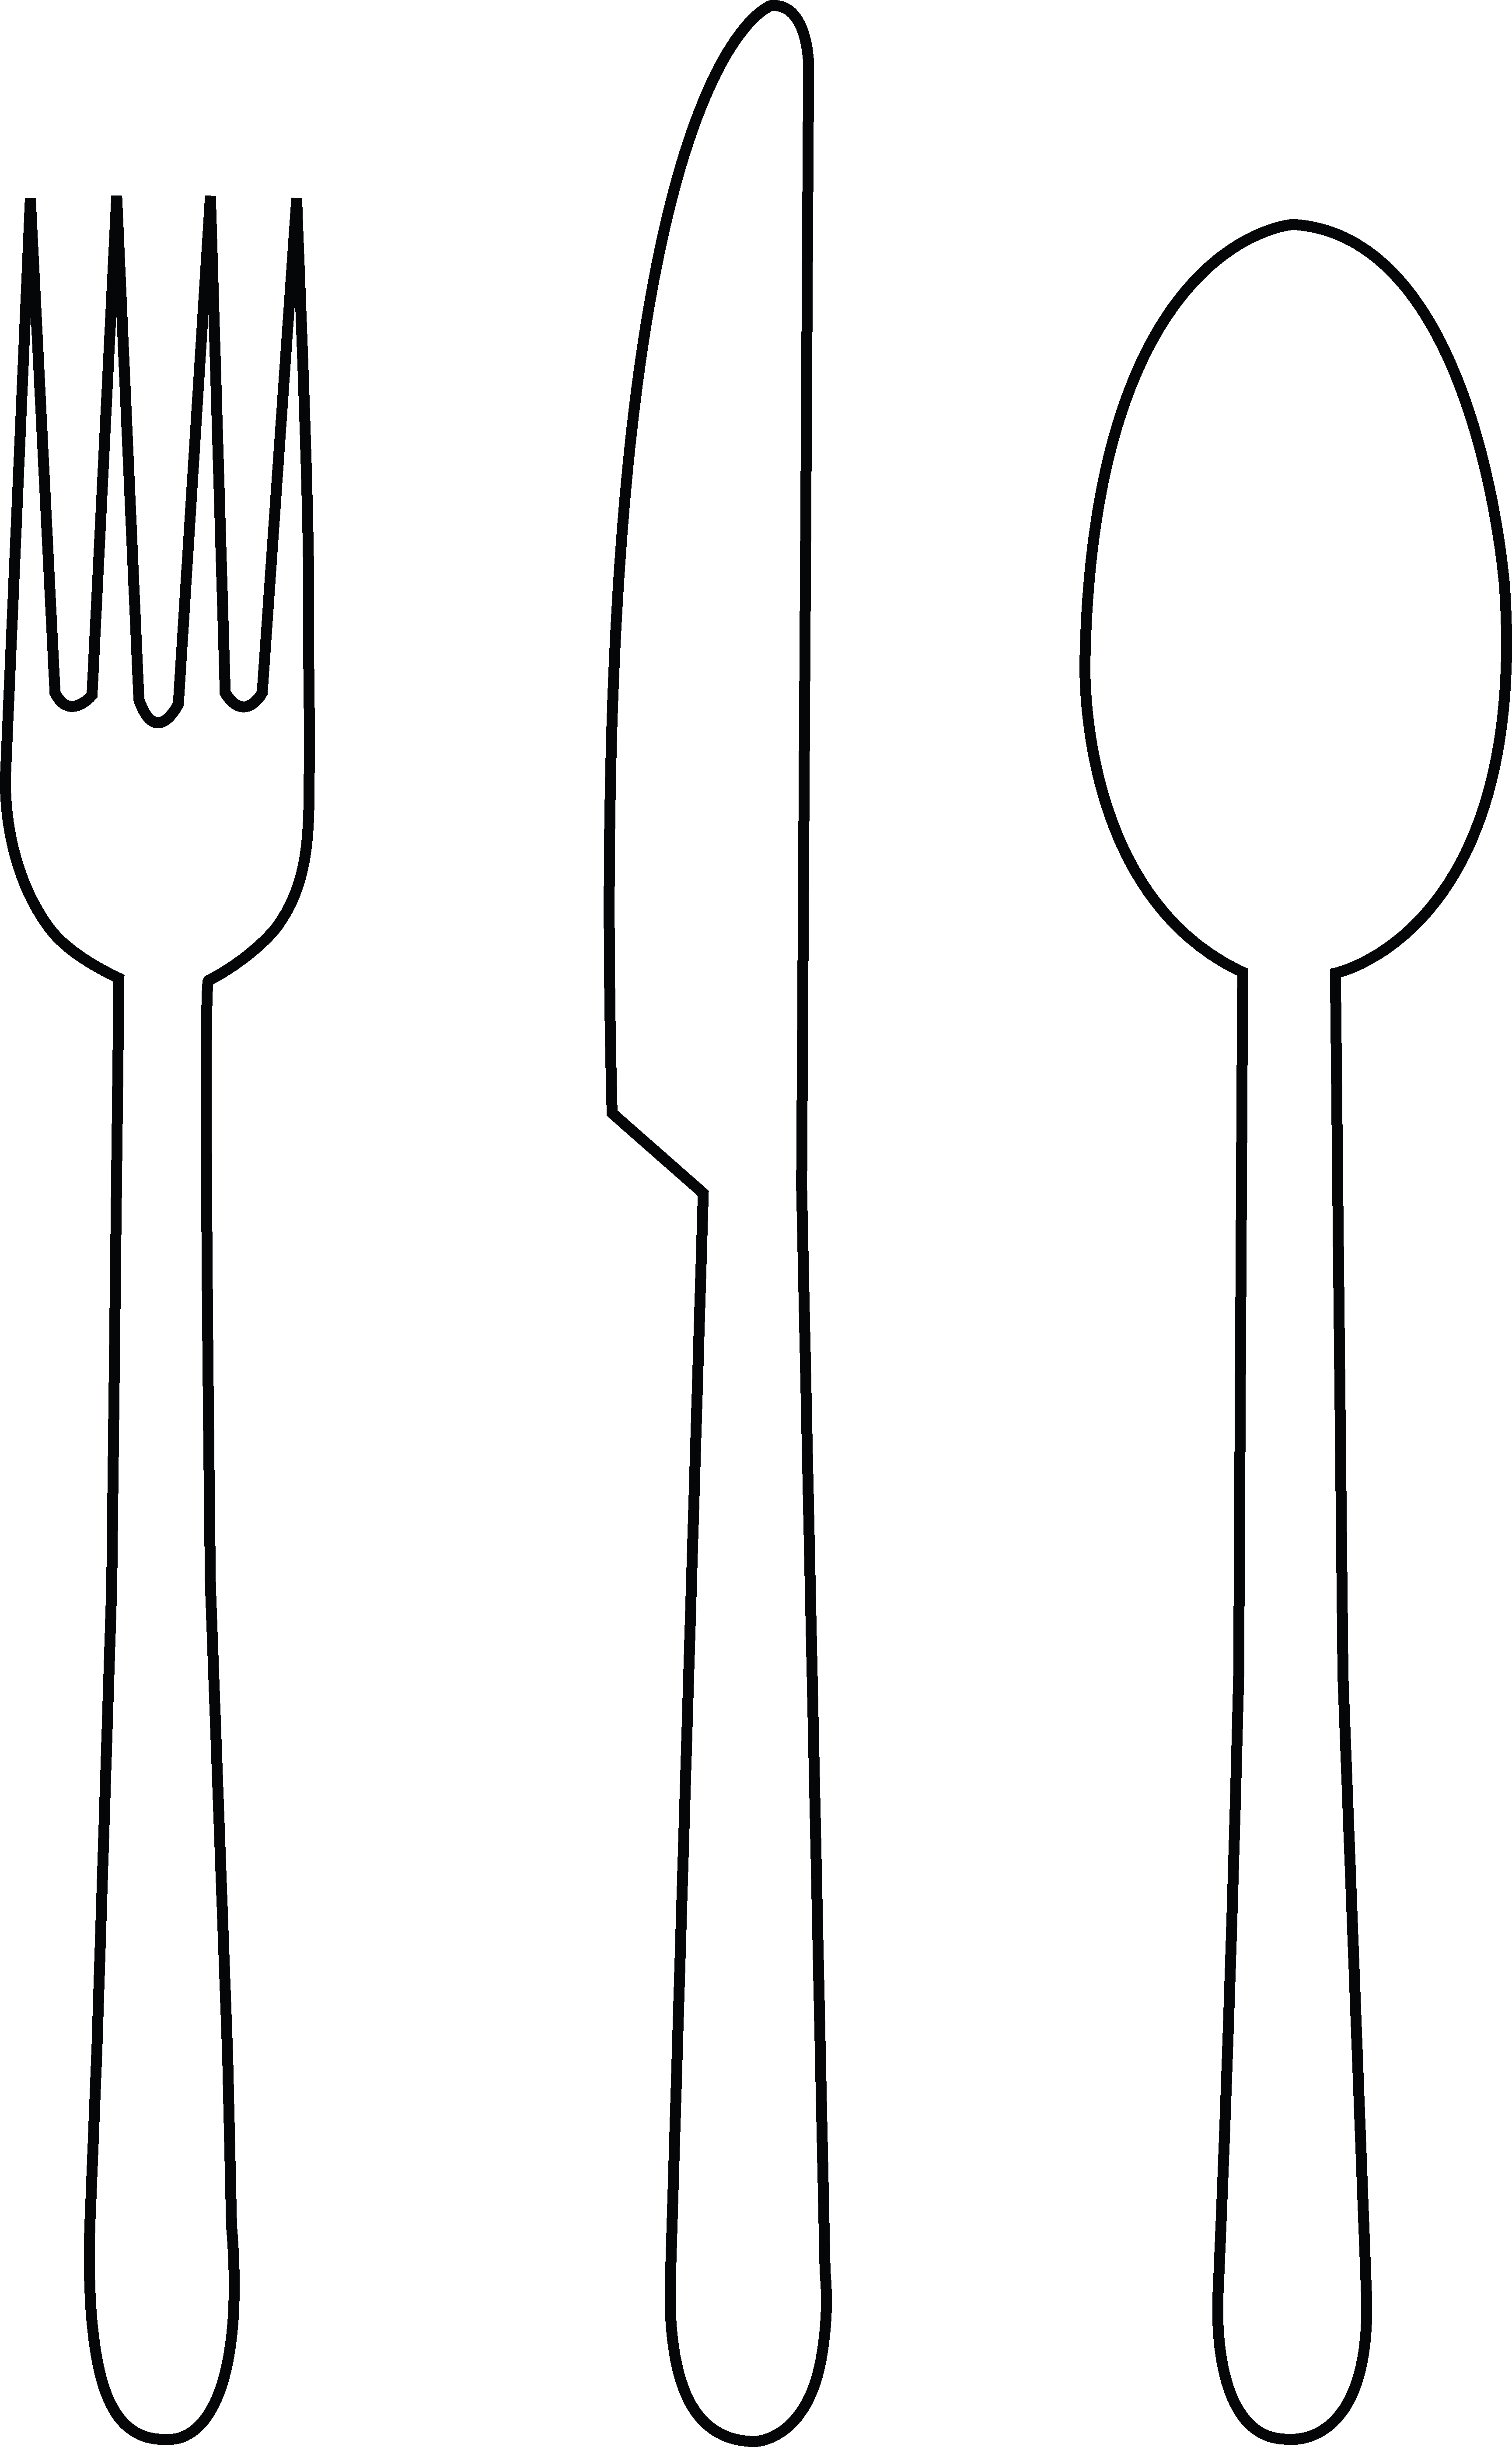 Fork knife clipart png. Collection of high